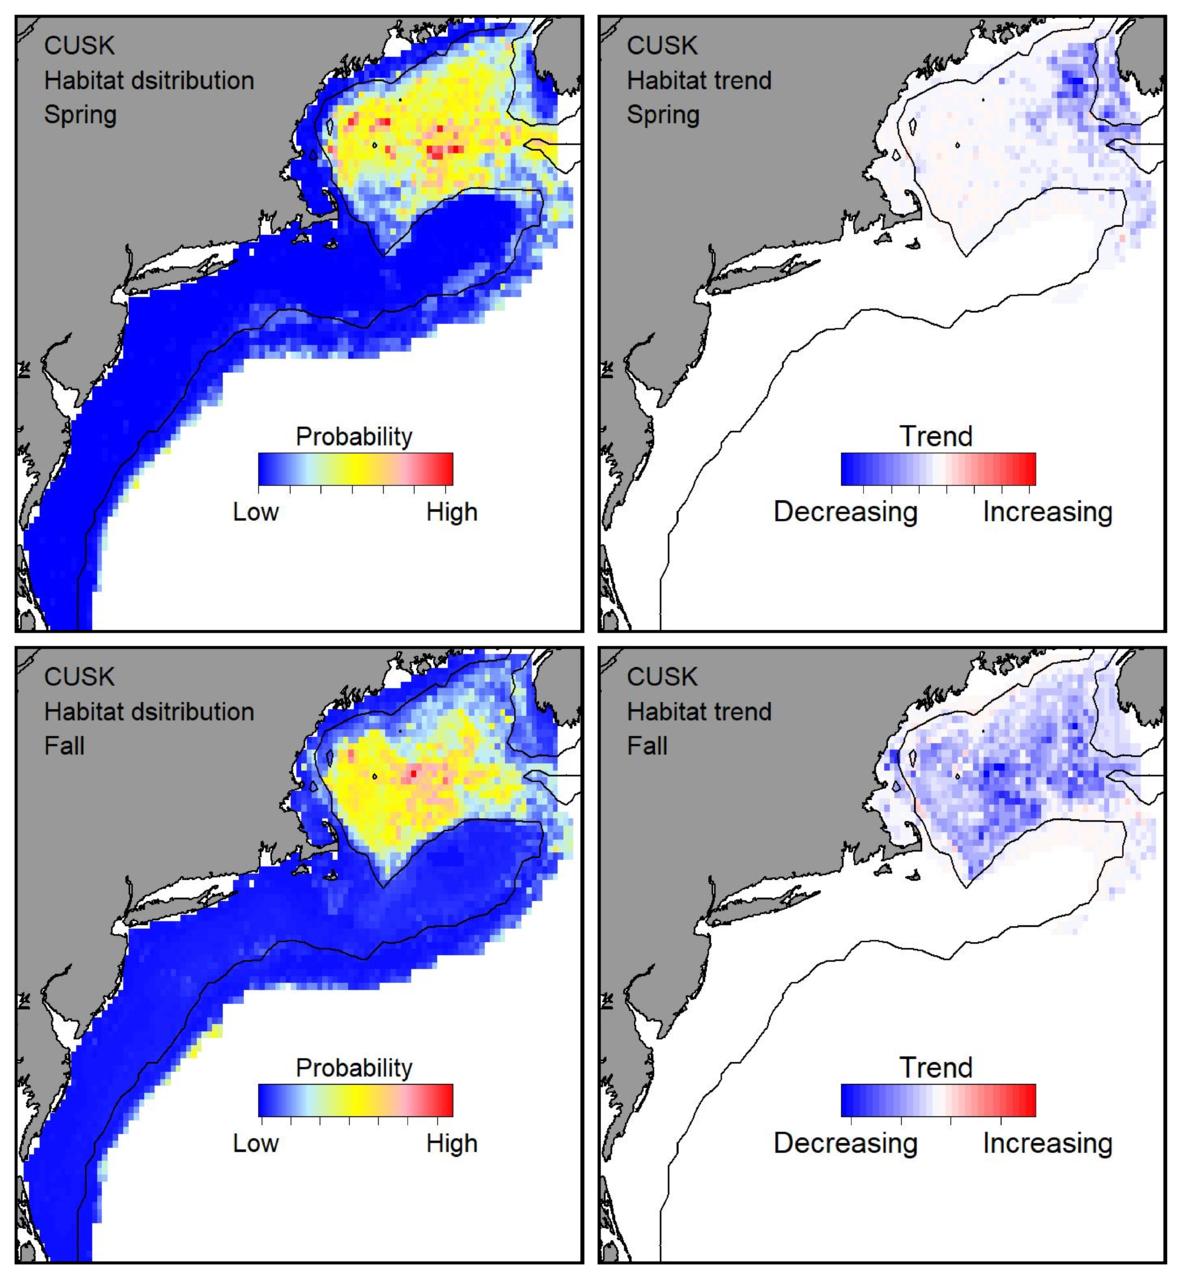 Probable habitat distribution for cusk showing the highest concentration and increasing trend in the Gulf of Maine during the spring. Bottom row: Probable habitat distribution for cusk showing the highest concentration and increasing trend in the Gulf of Maine during the fall.